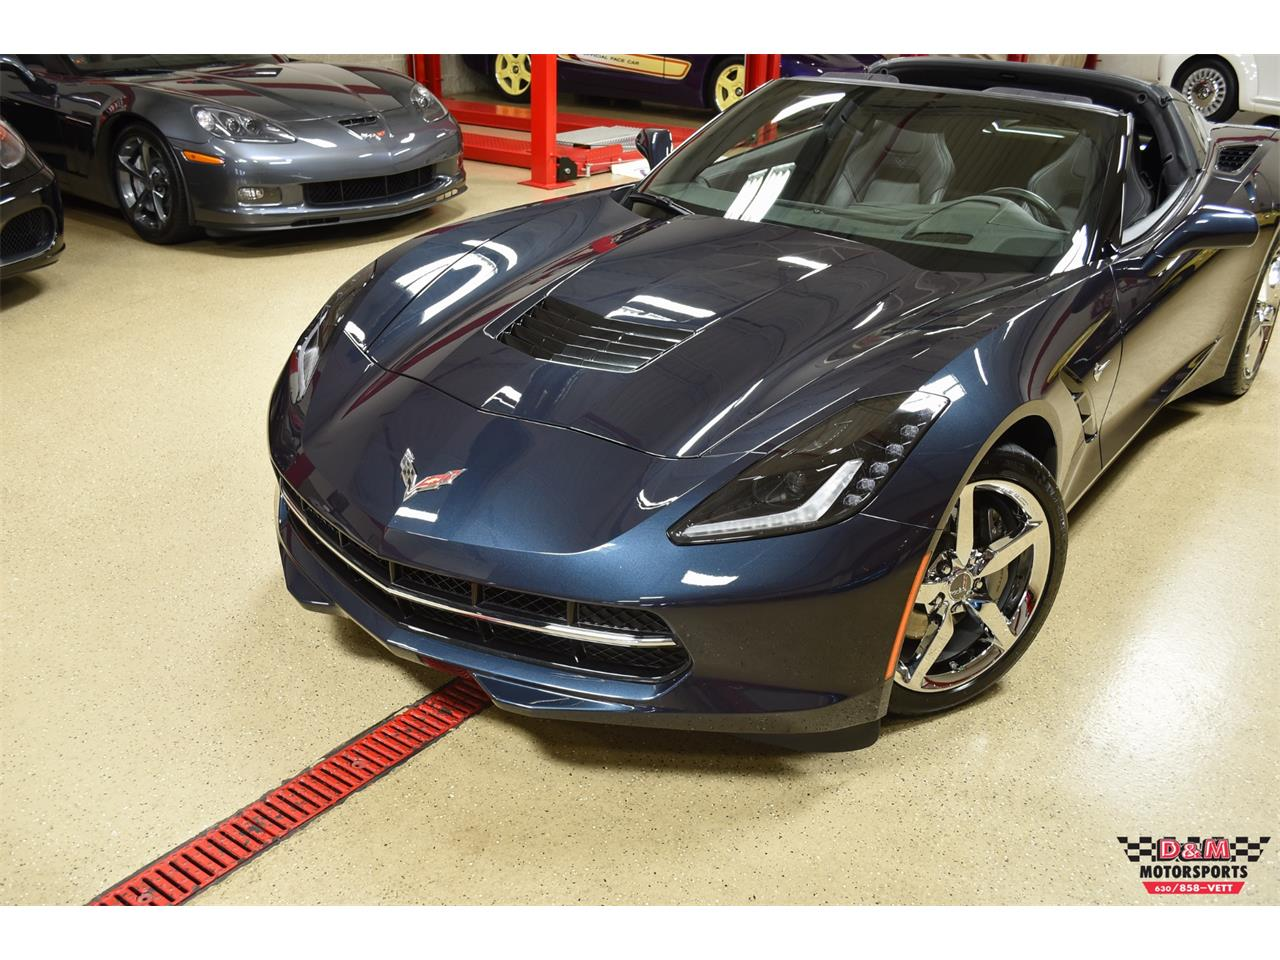 Large Picture of 2015 Chevrolet Corvette located in Glen Ellyn Illinois Offered by D & M Motorsports - QGAK